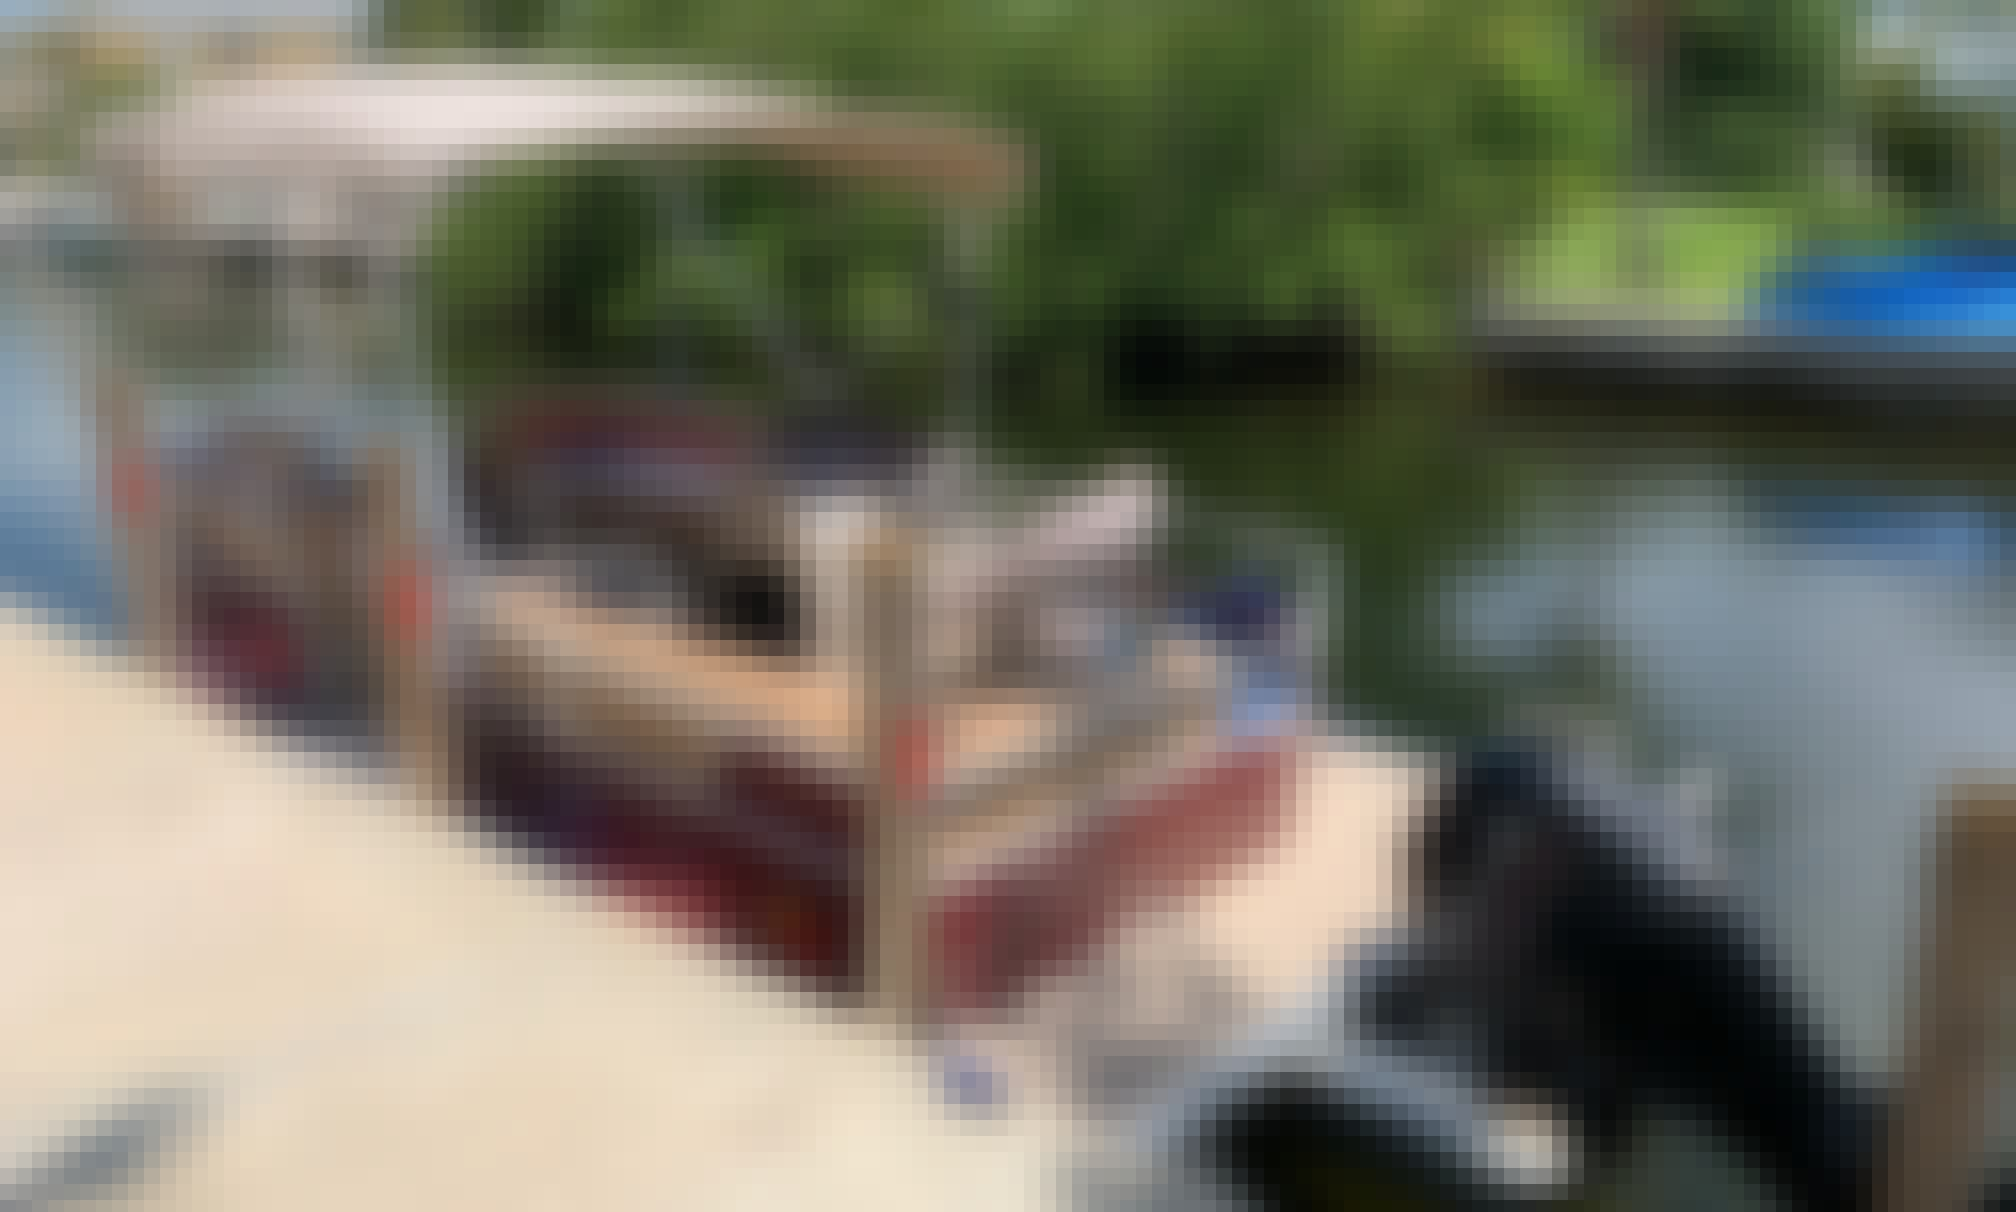 18' Pontoon for Rent in Cudjoe Key, Florida. Includes trails to local hot spots. SAVE Big on multi day and week rental. Up to 50%